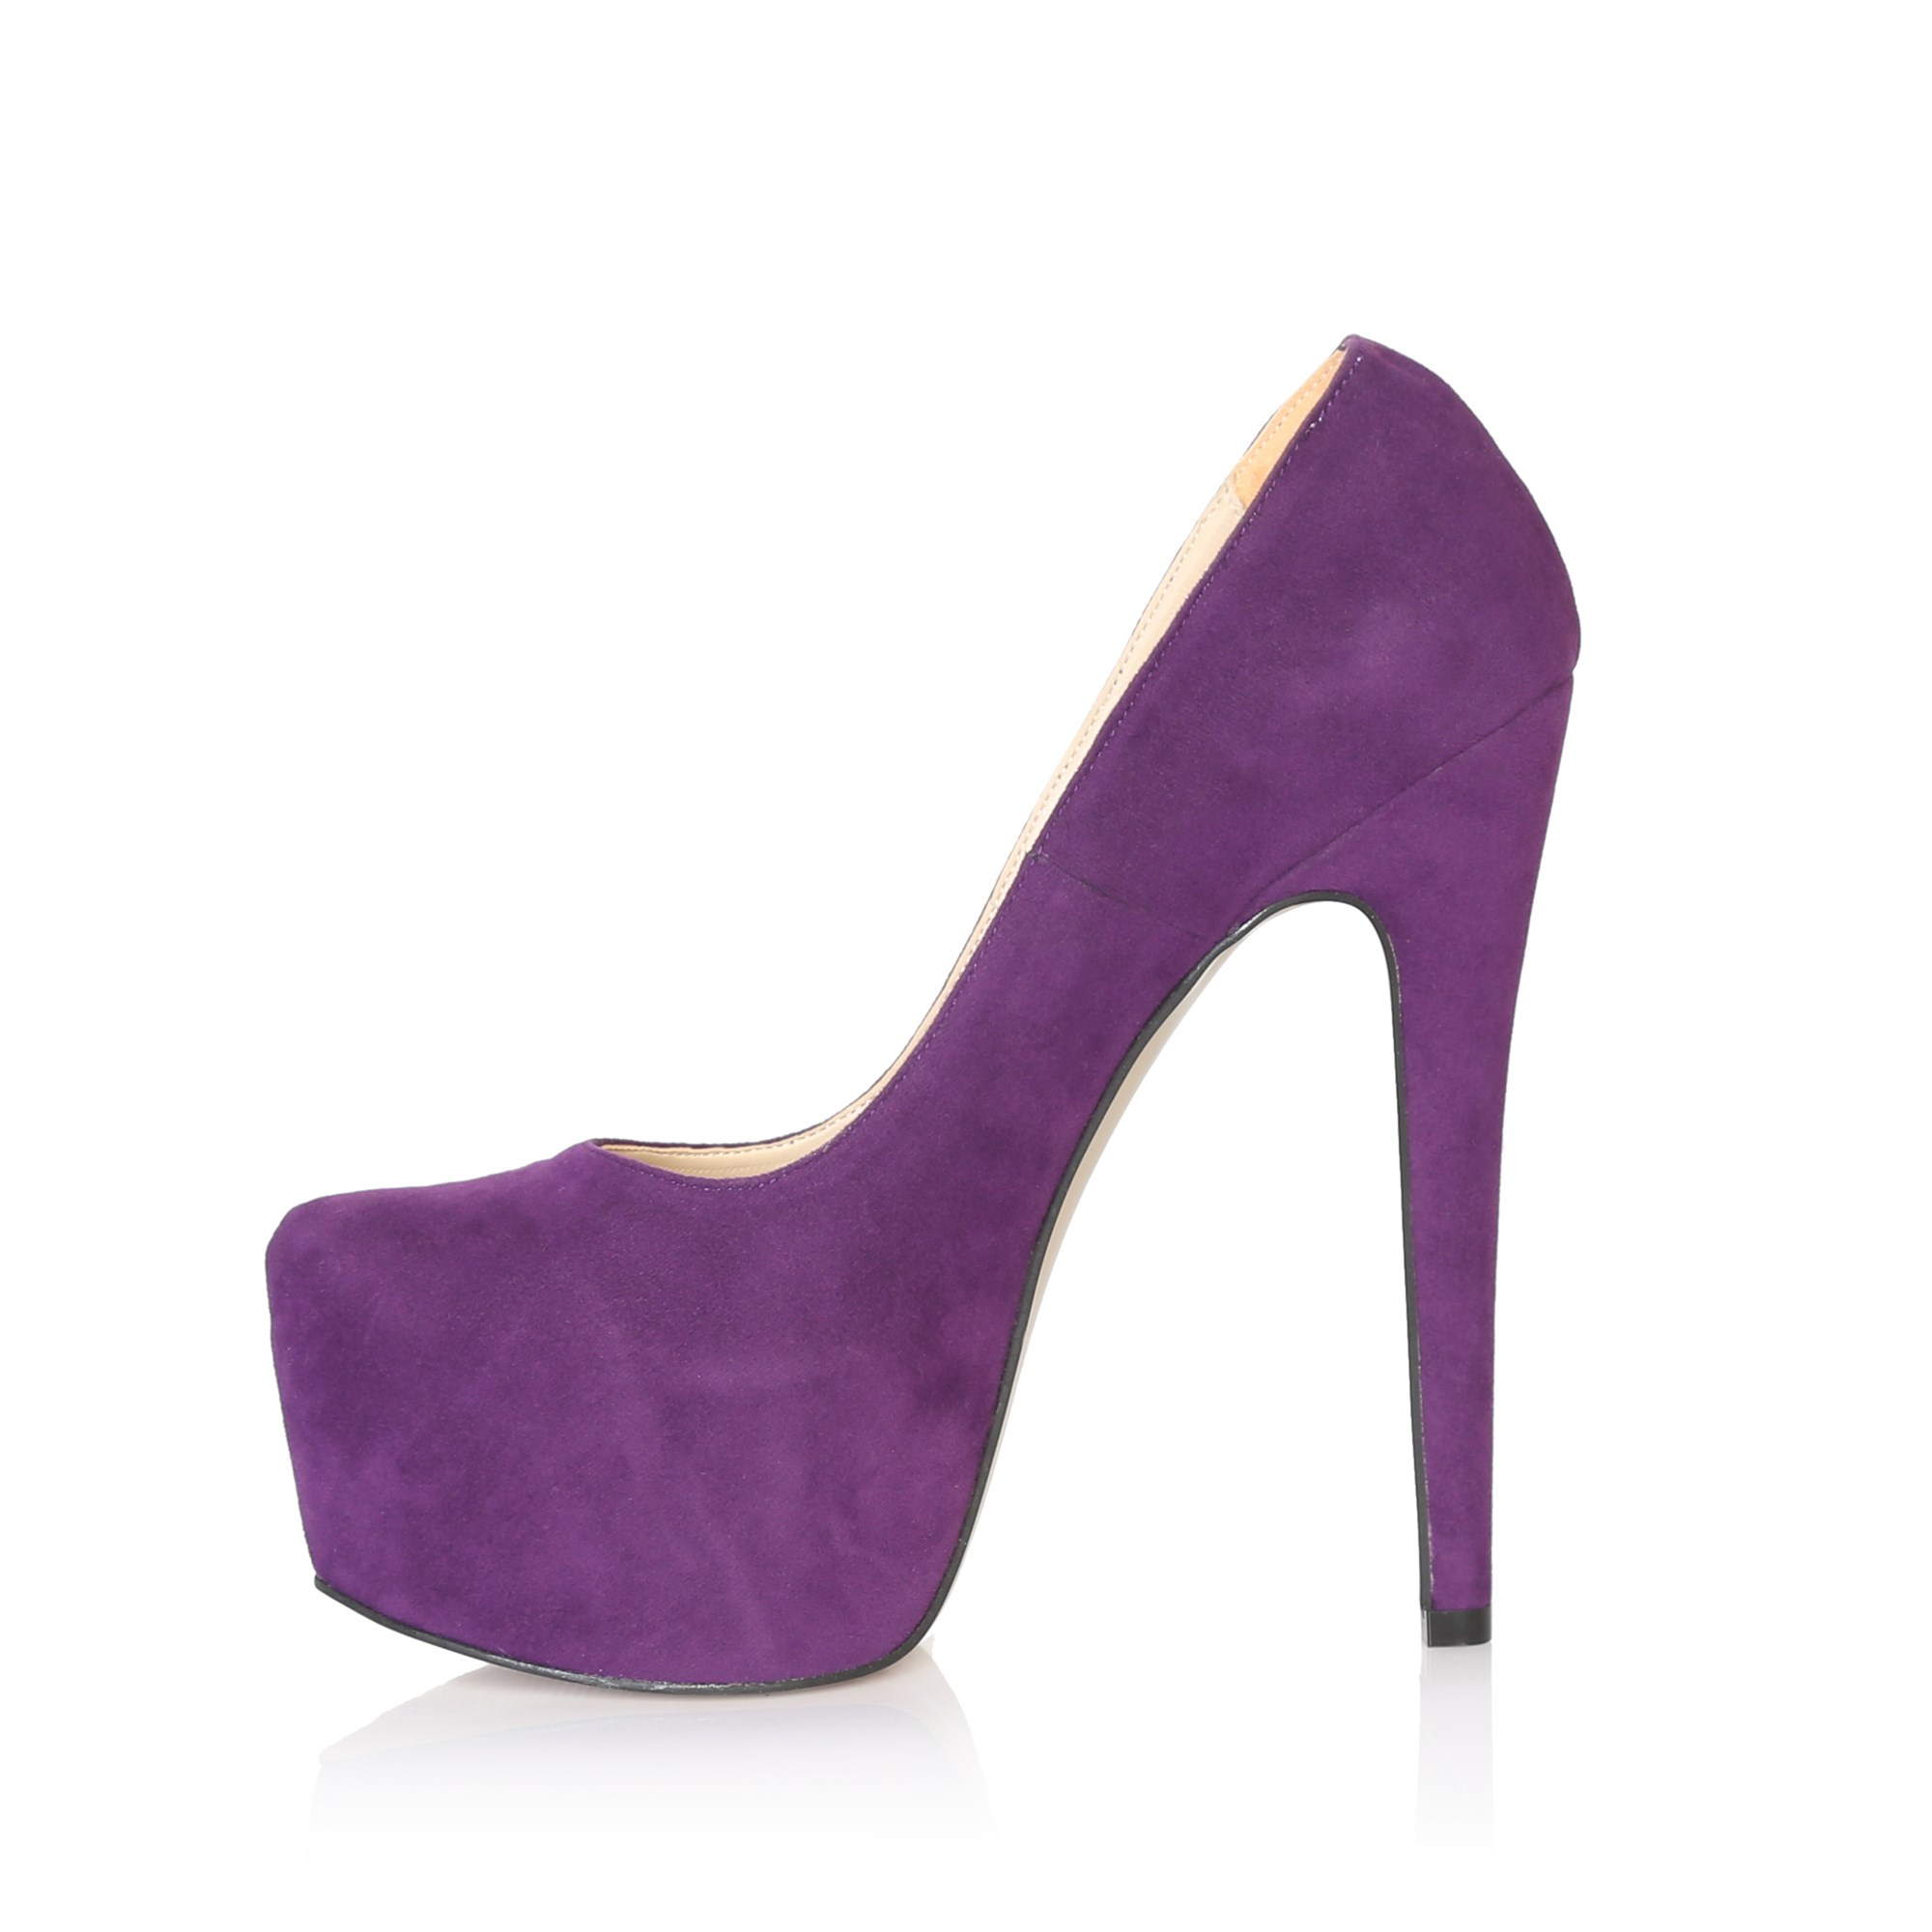 Mst-029 Purple Suede 2020 New Summer Sexy Women High Heels 15 Cm Fashion Stripper Shoes Party Shoes 35-40